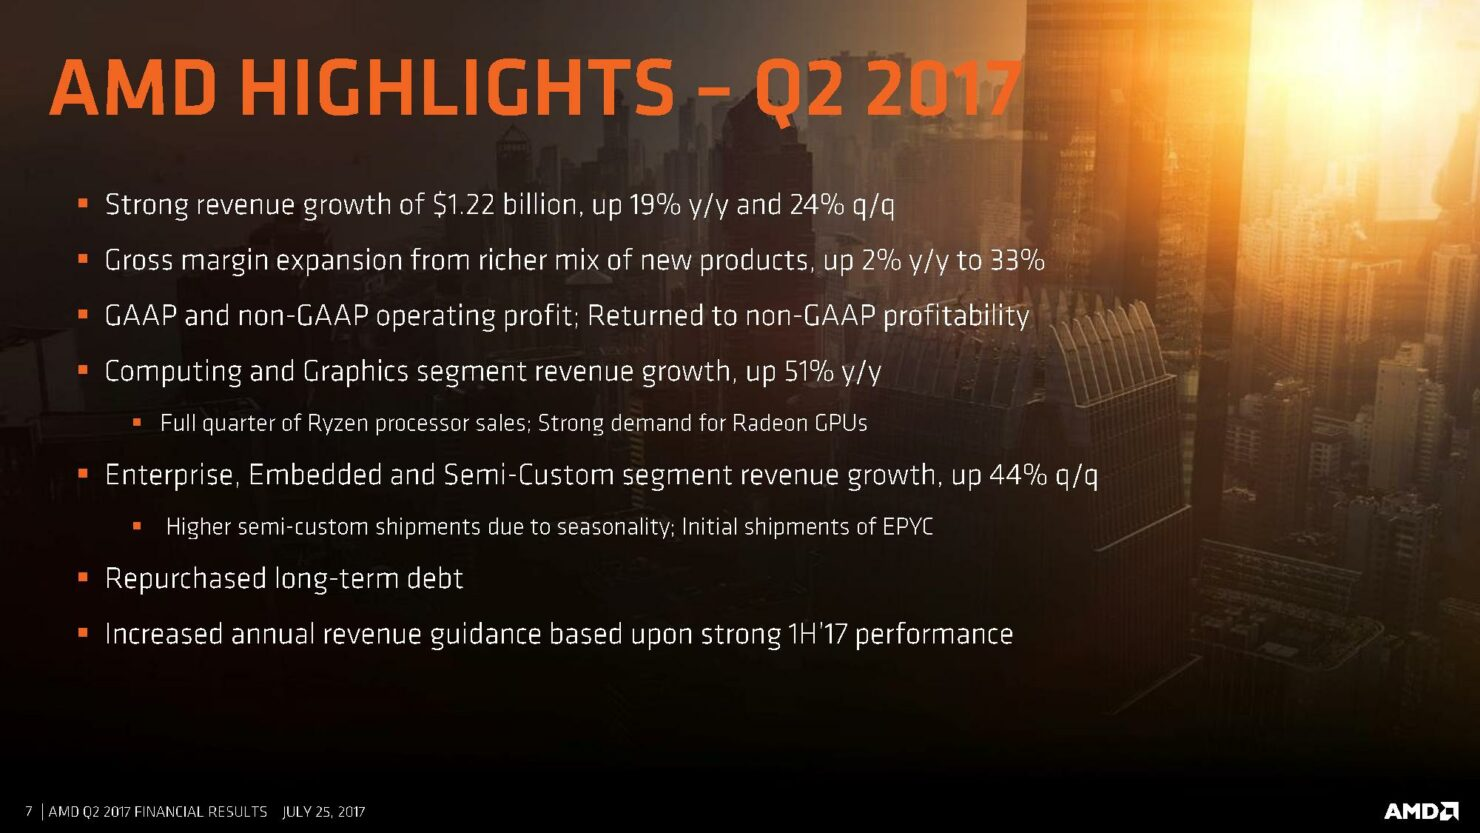 amd-cfo-commentary-slides-q2-17-page-007